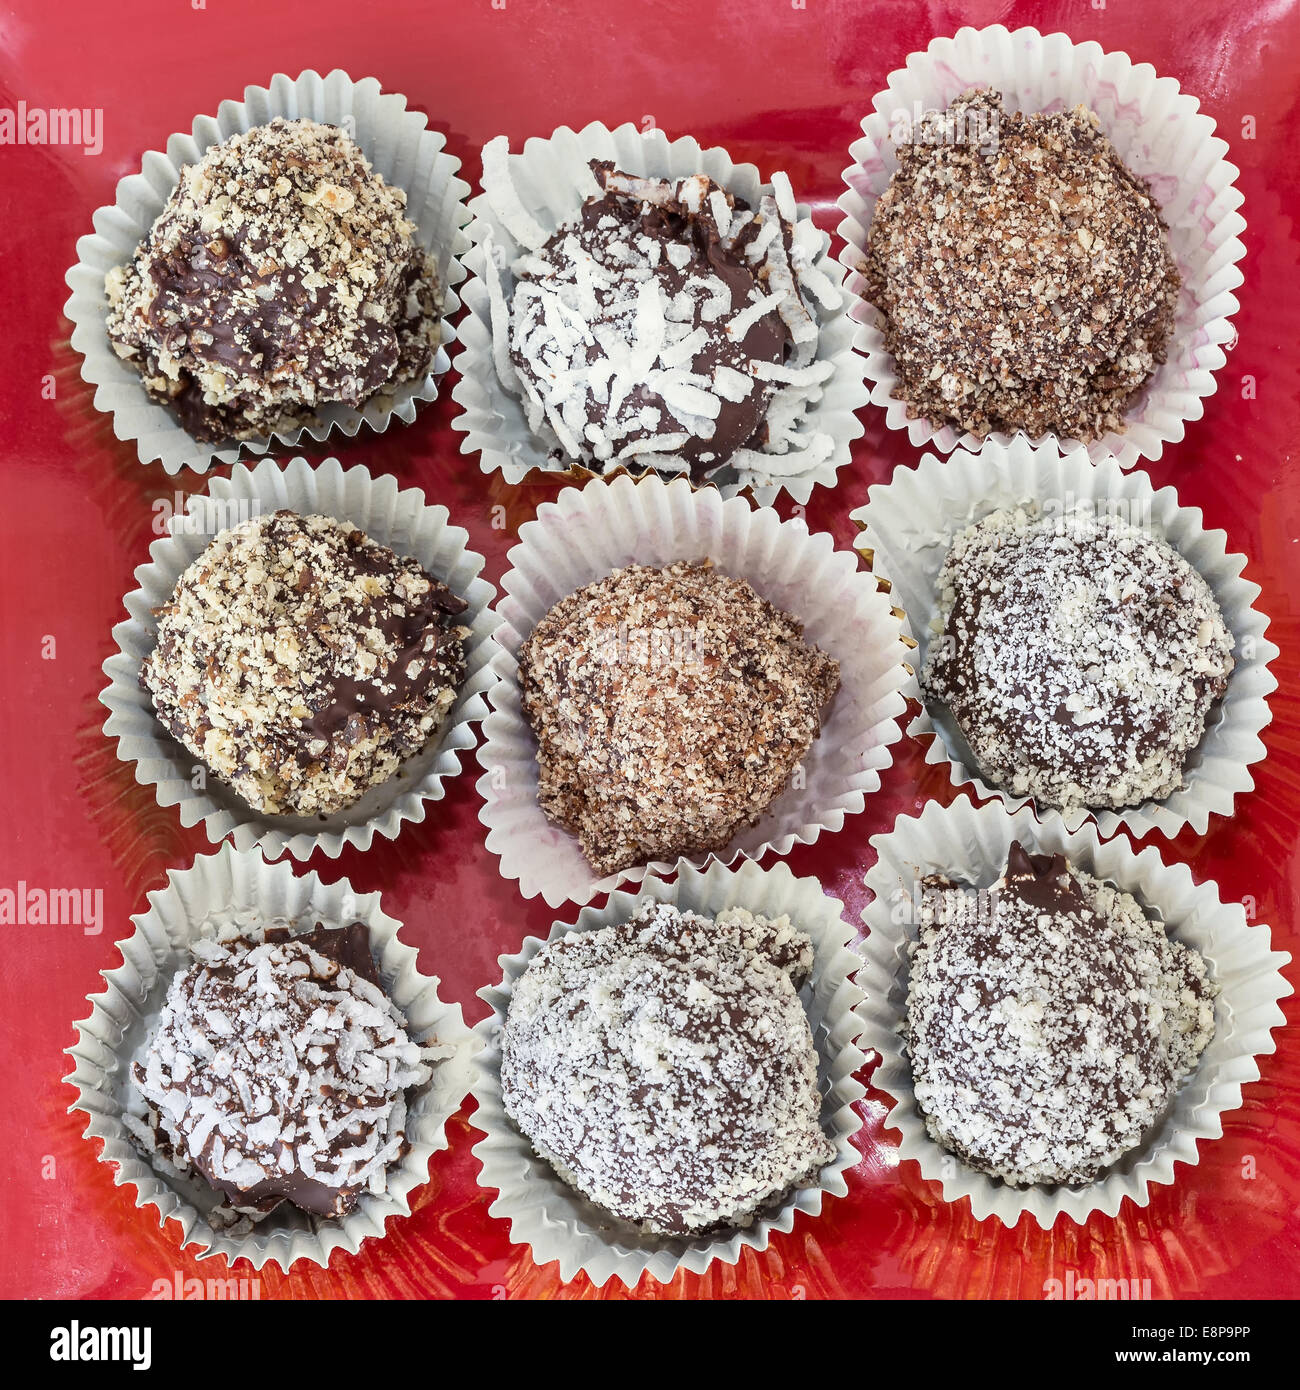 Homemade chocolate truffles with different coatings such as coconut, crushed almonds or hazelnuts or walnuts. Stock Photo